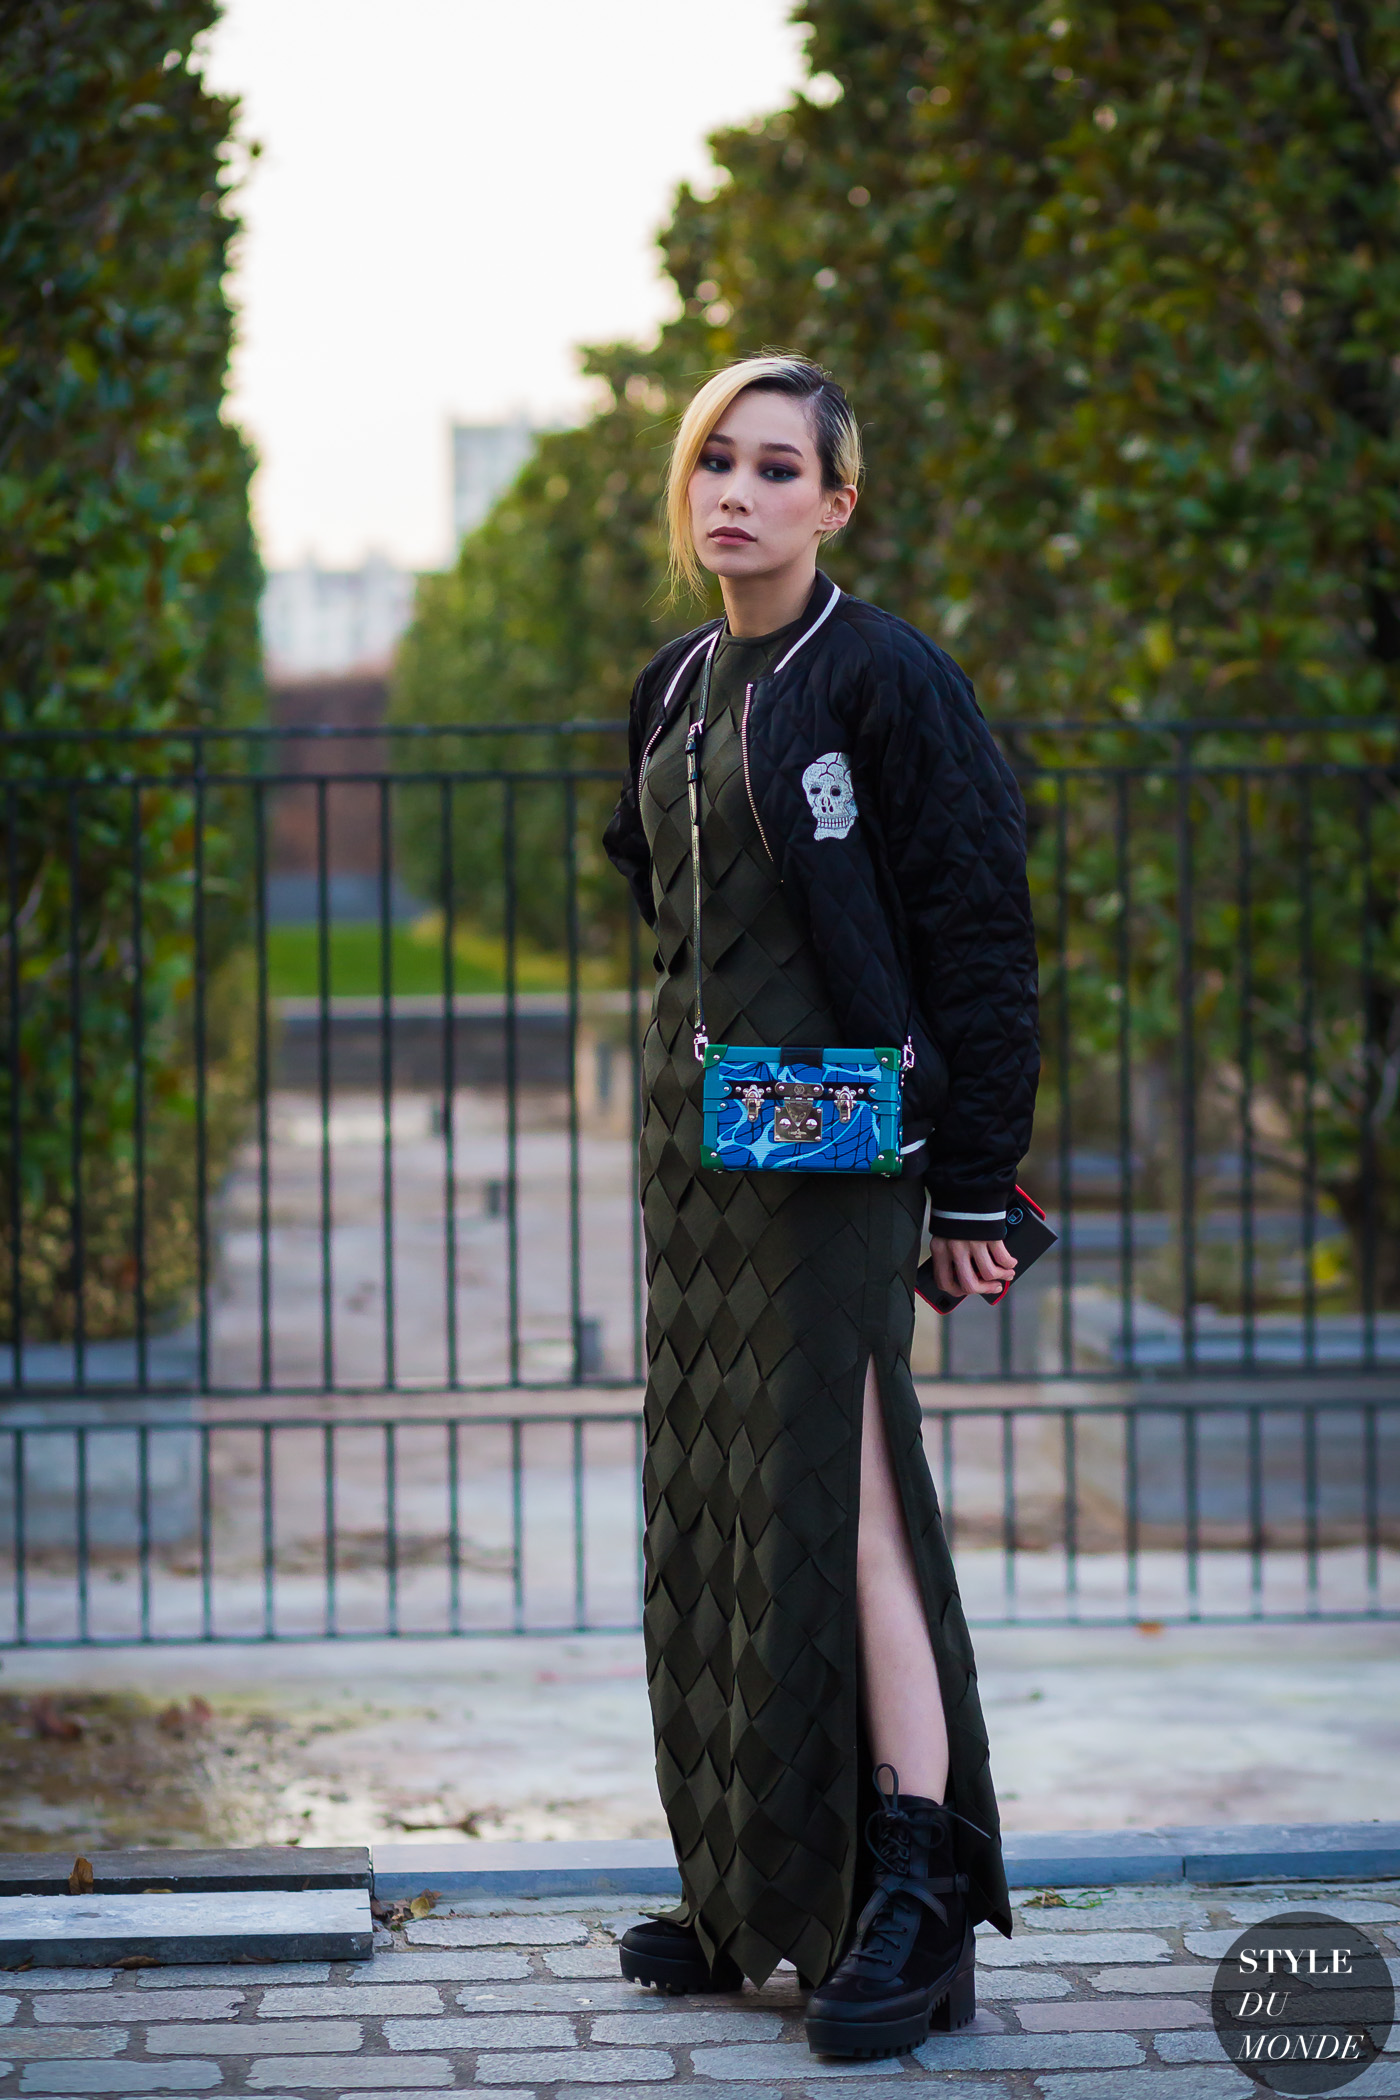 Mademoiselle Yulia Street Style Street Fashion Streetsnaps by STYLEDUMONDE Street Style Fashion Photography